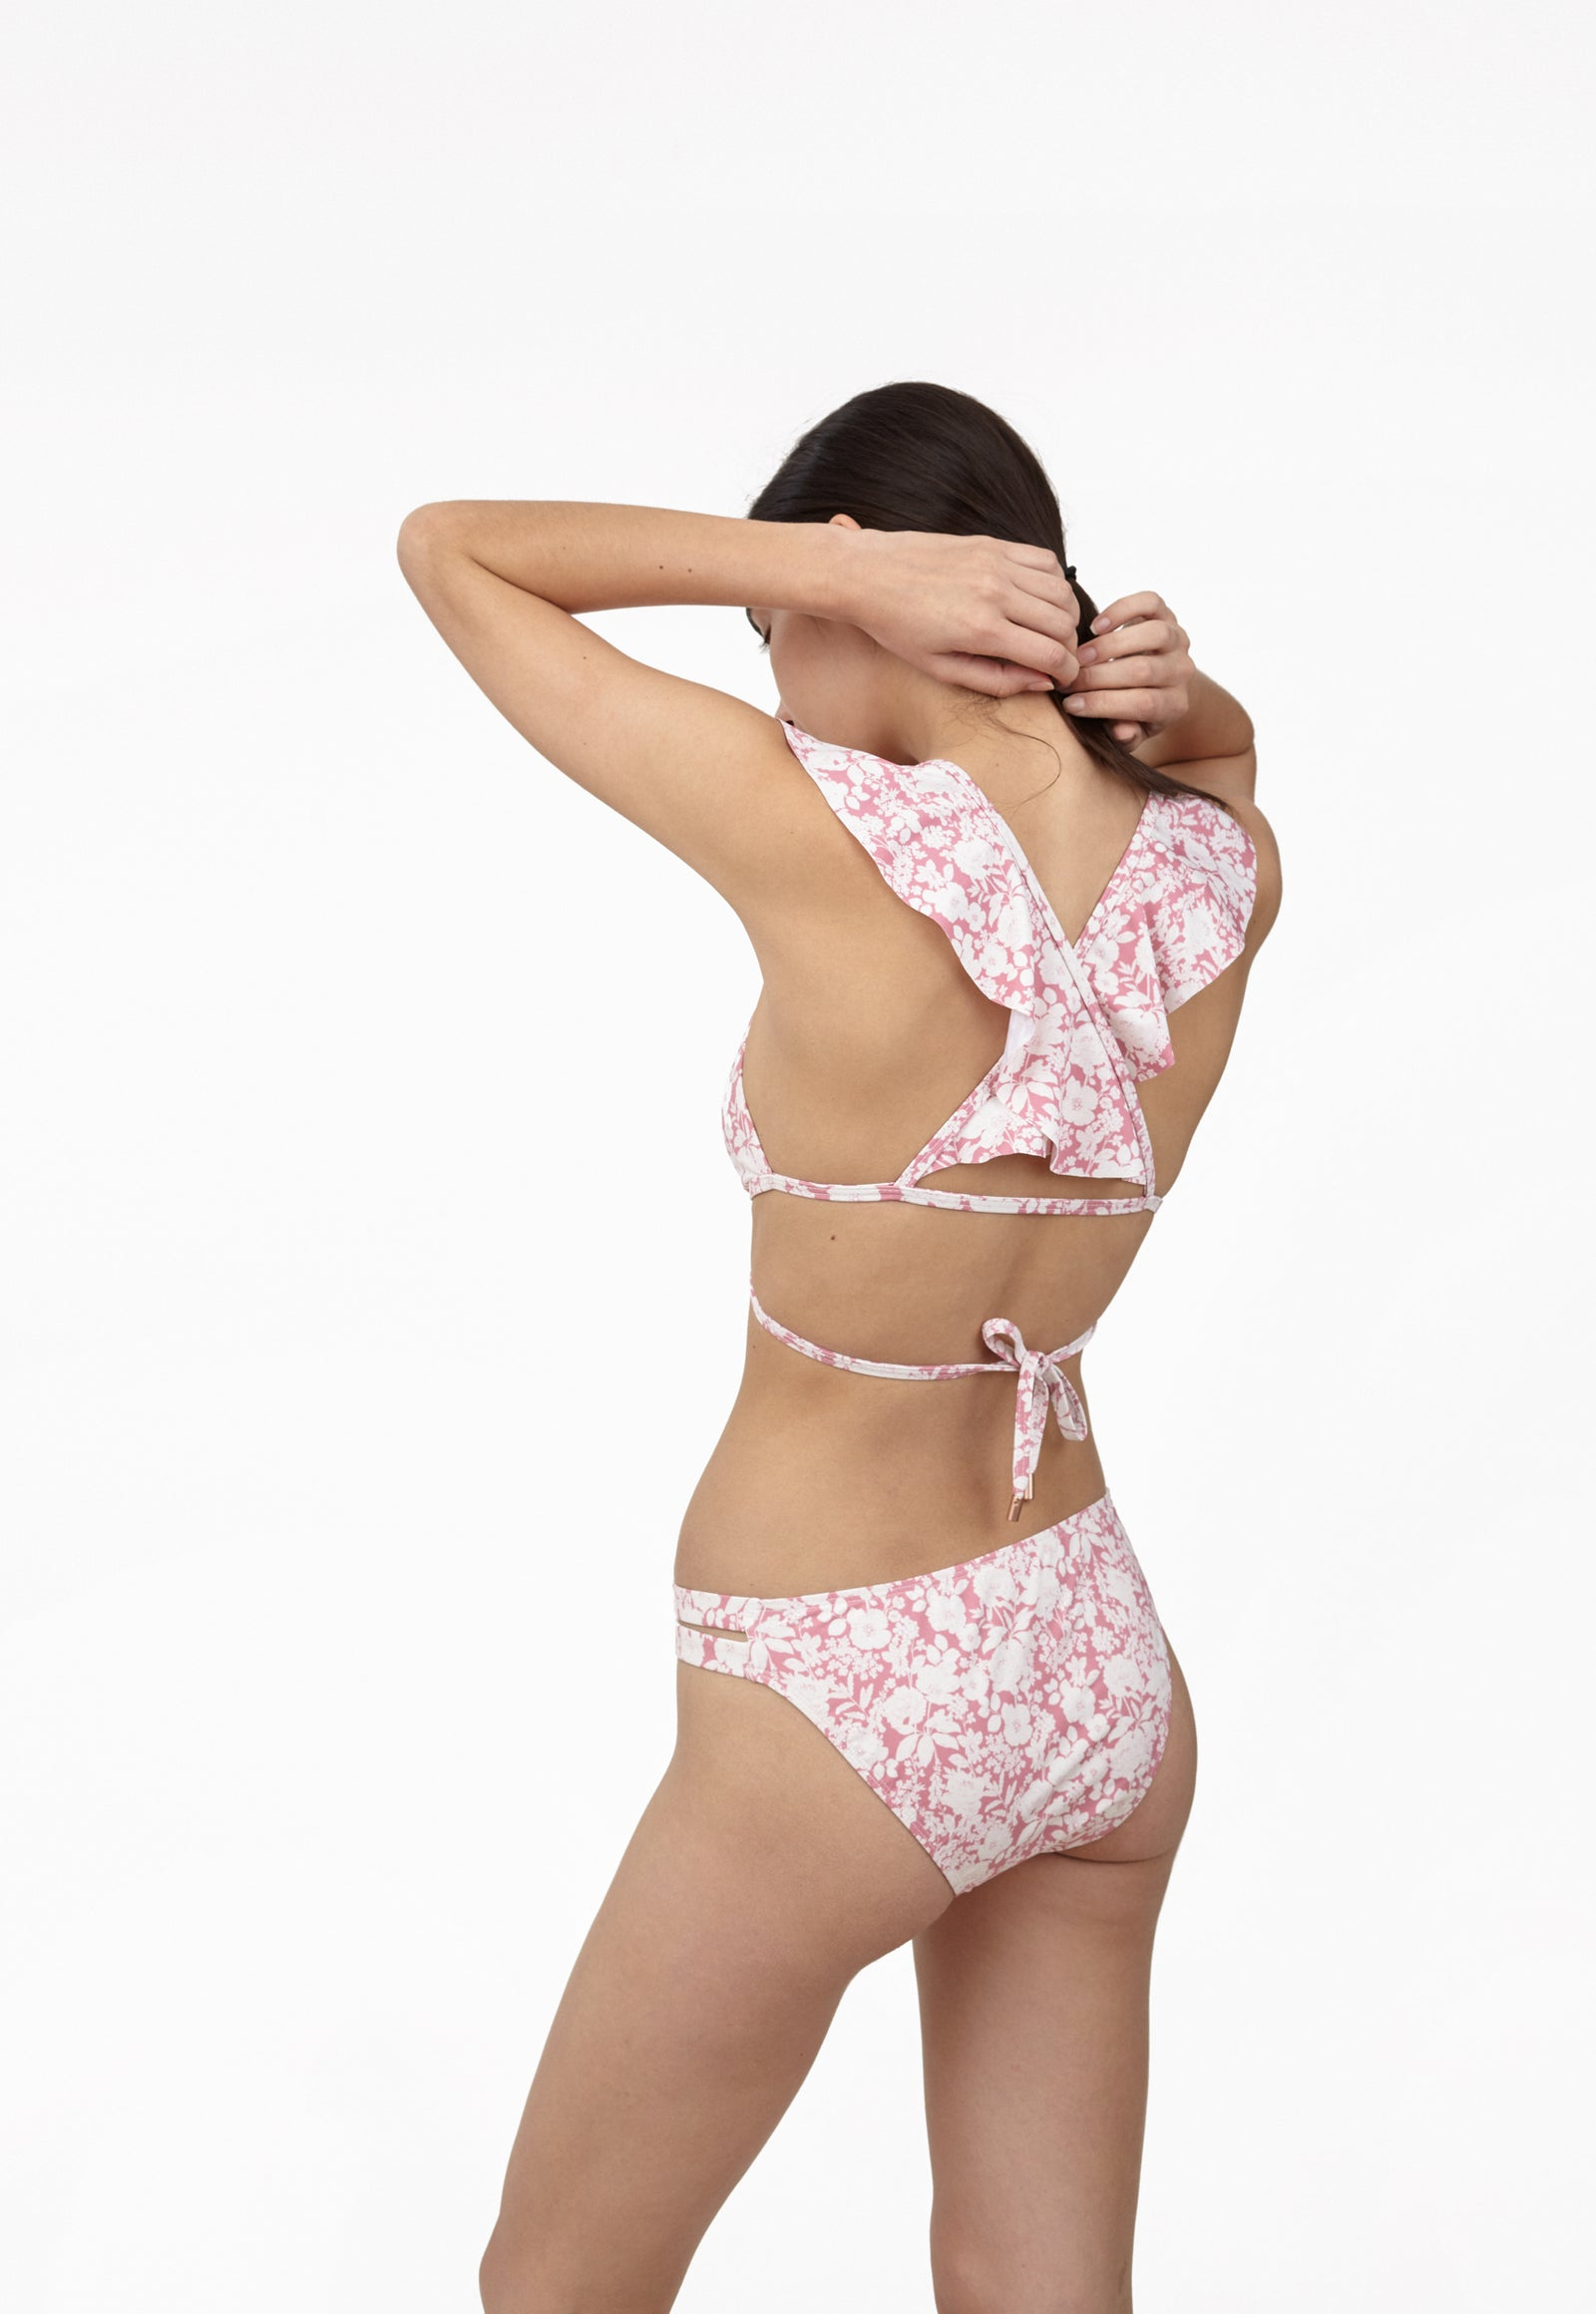 6 Shore Road Beach Wave Women's Pink Floral Swimsuit Bikini in XS, S, M, L - Summer 2018 Collection